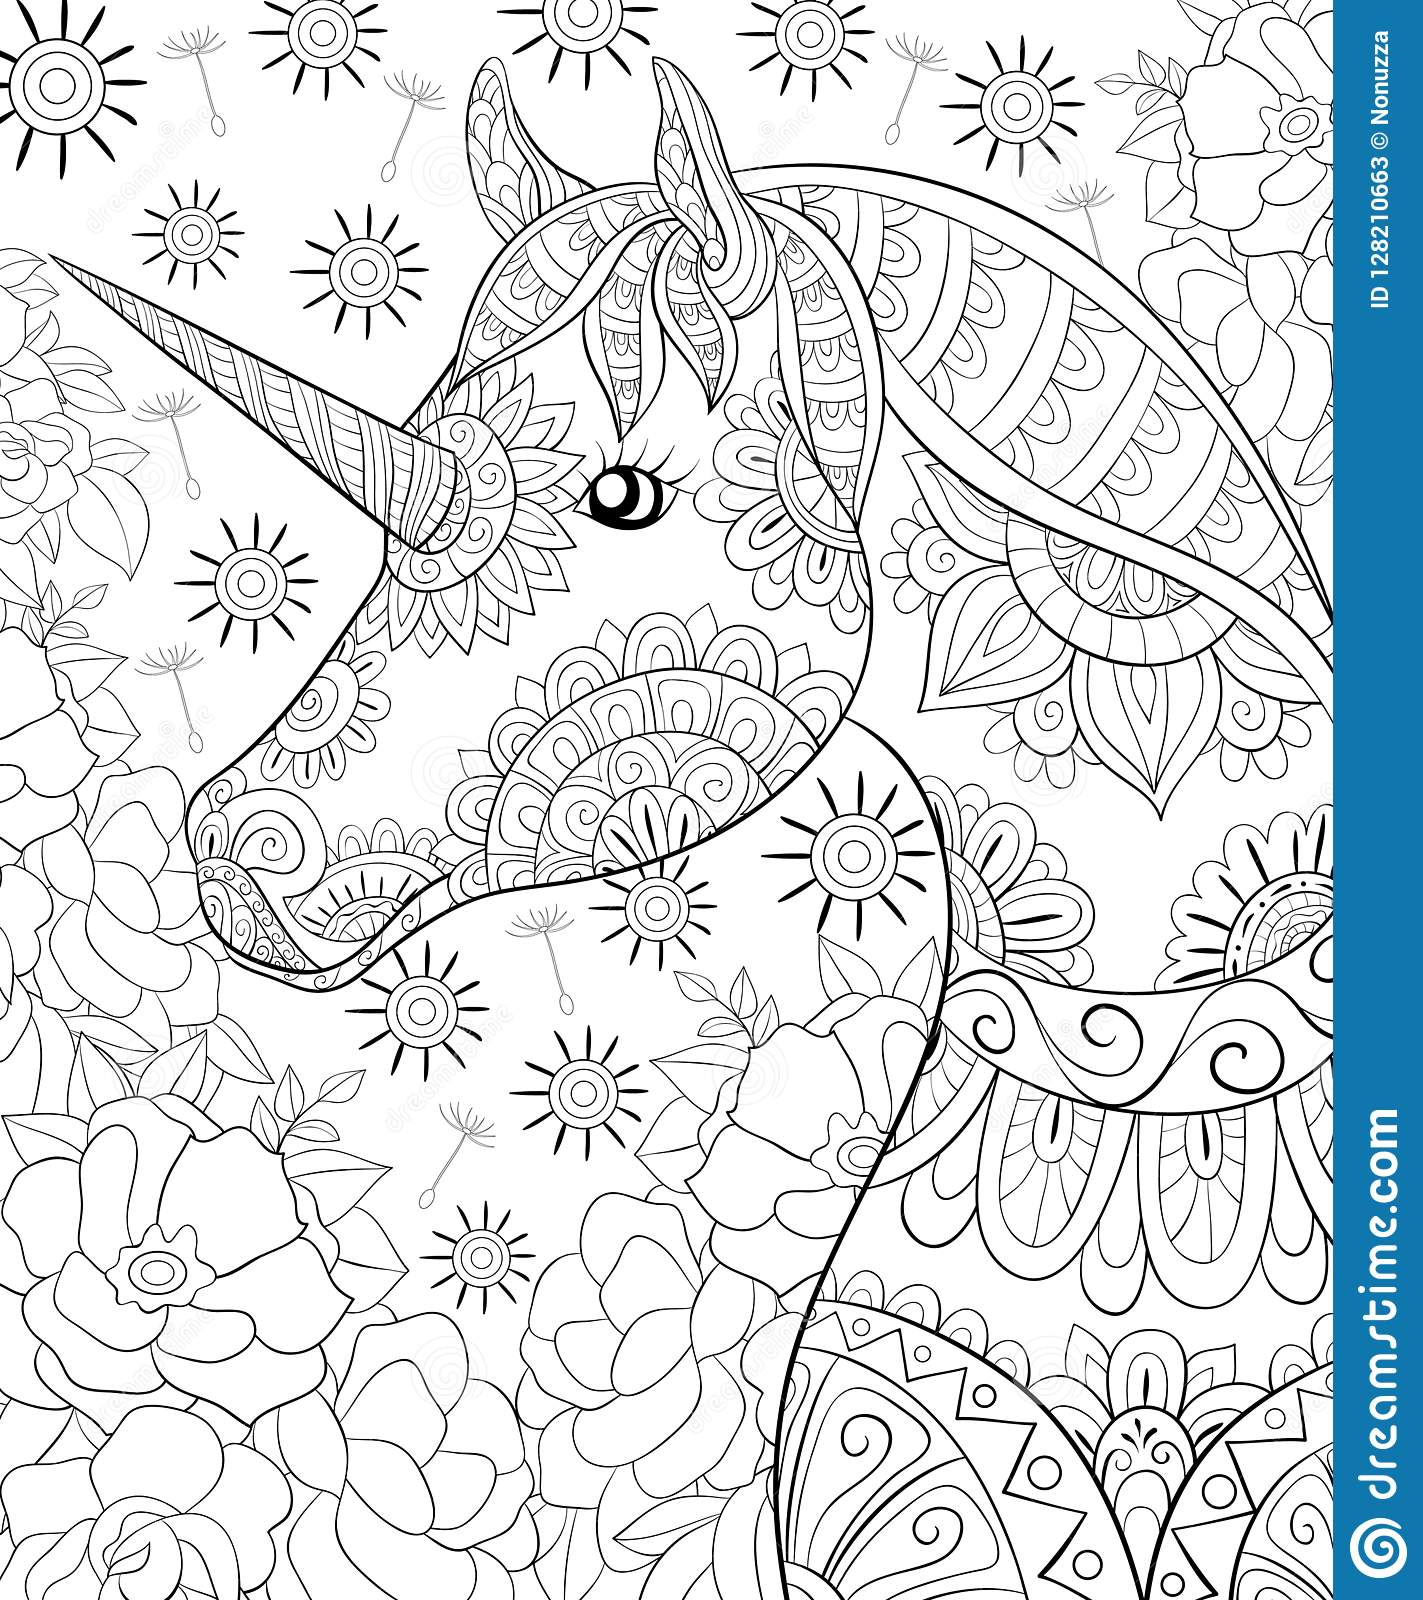 Adult Coloring Book Page A Cute Horse Unicorn Image For Relaxing